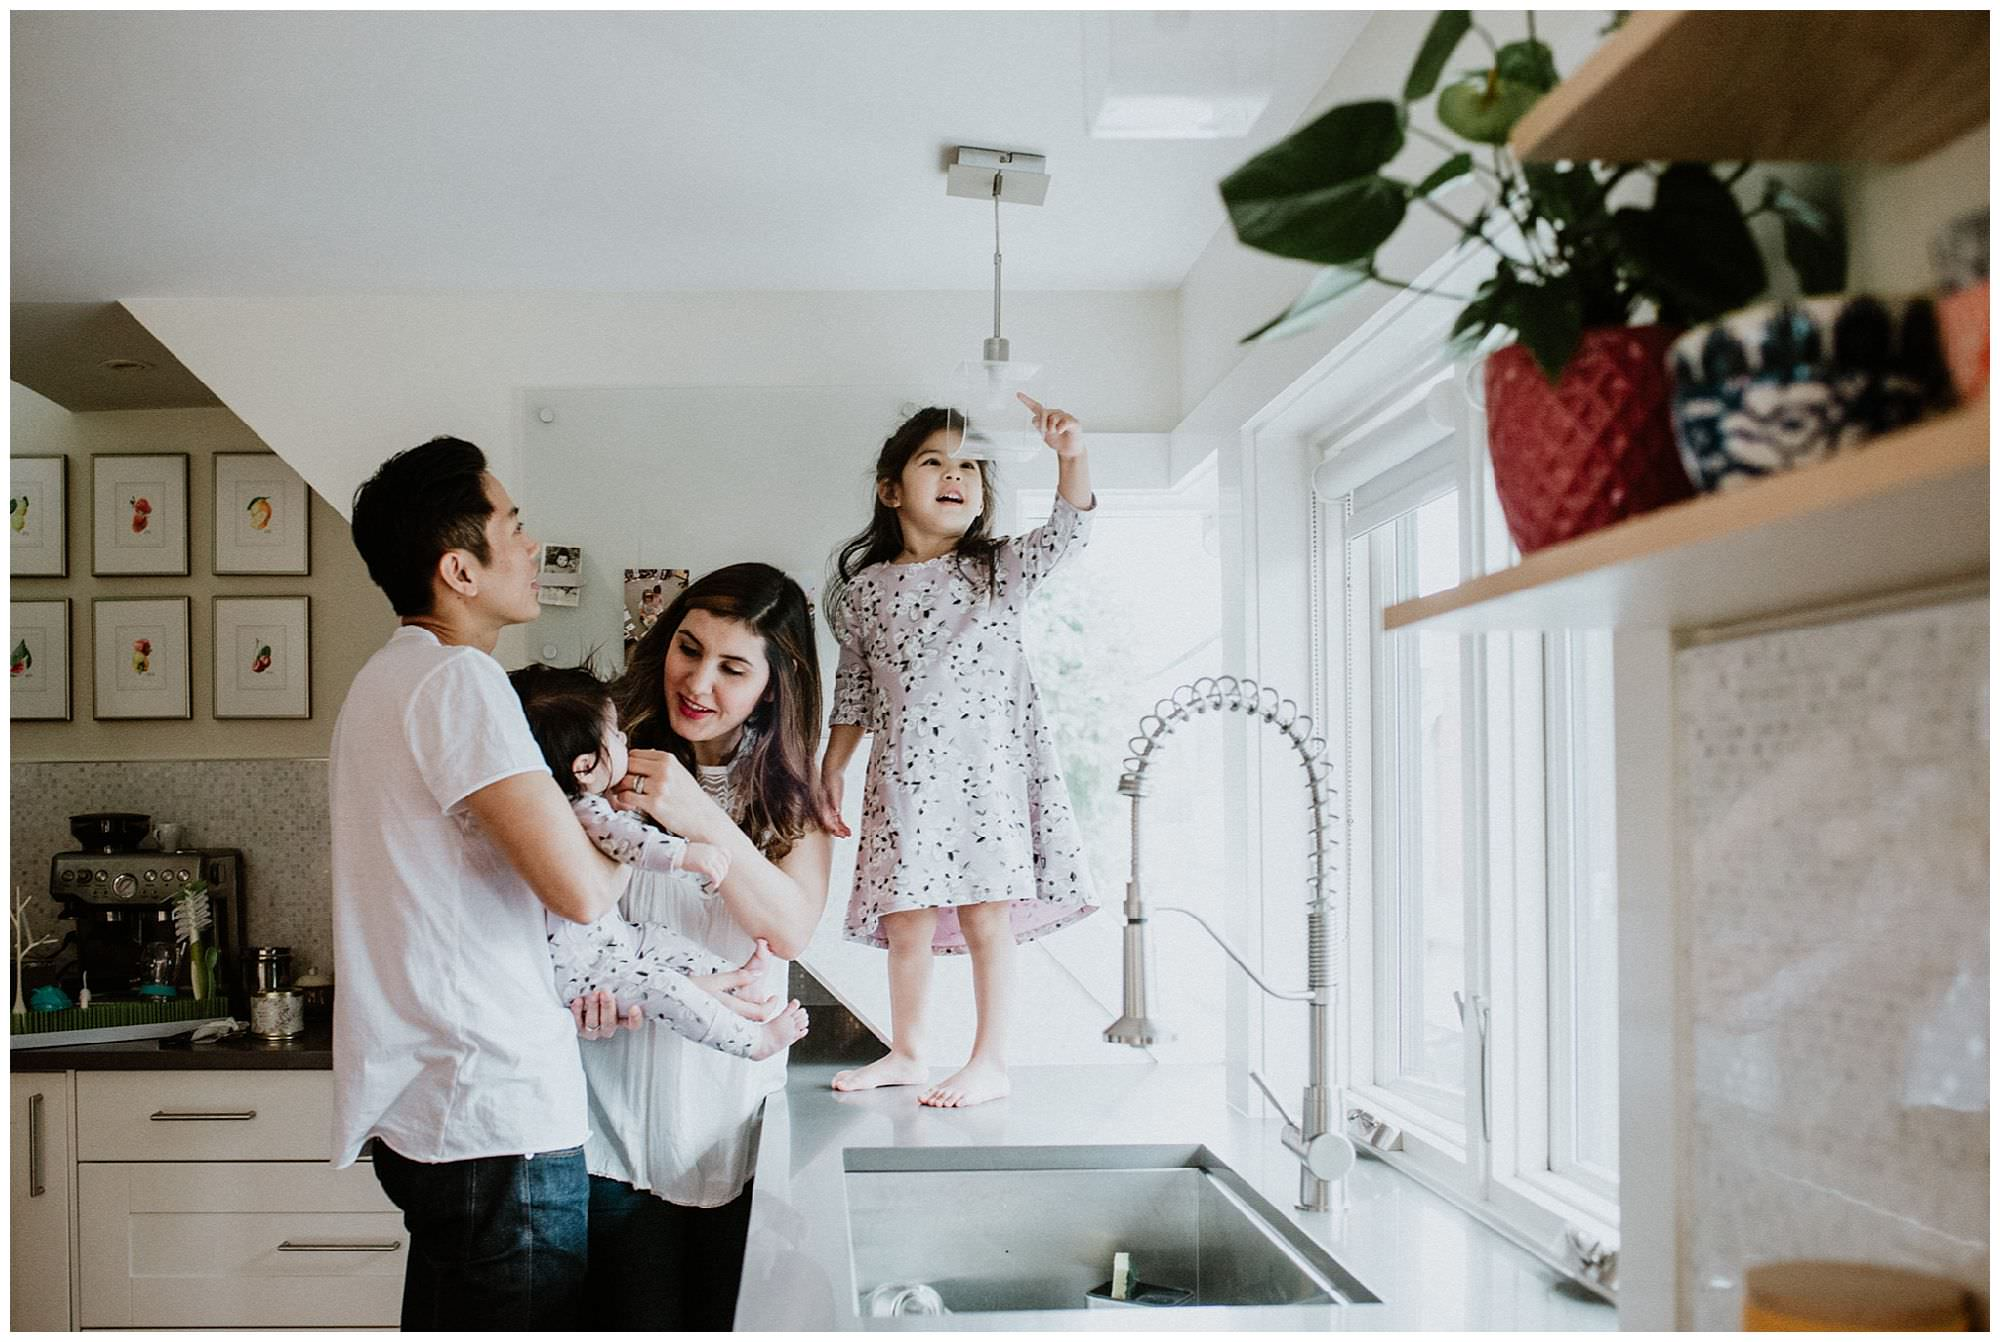 family-in-kitchen-lifestyle-session-Vancouver